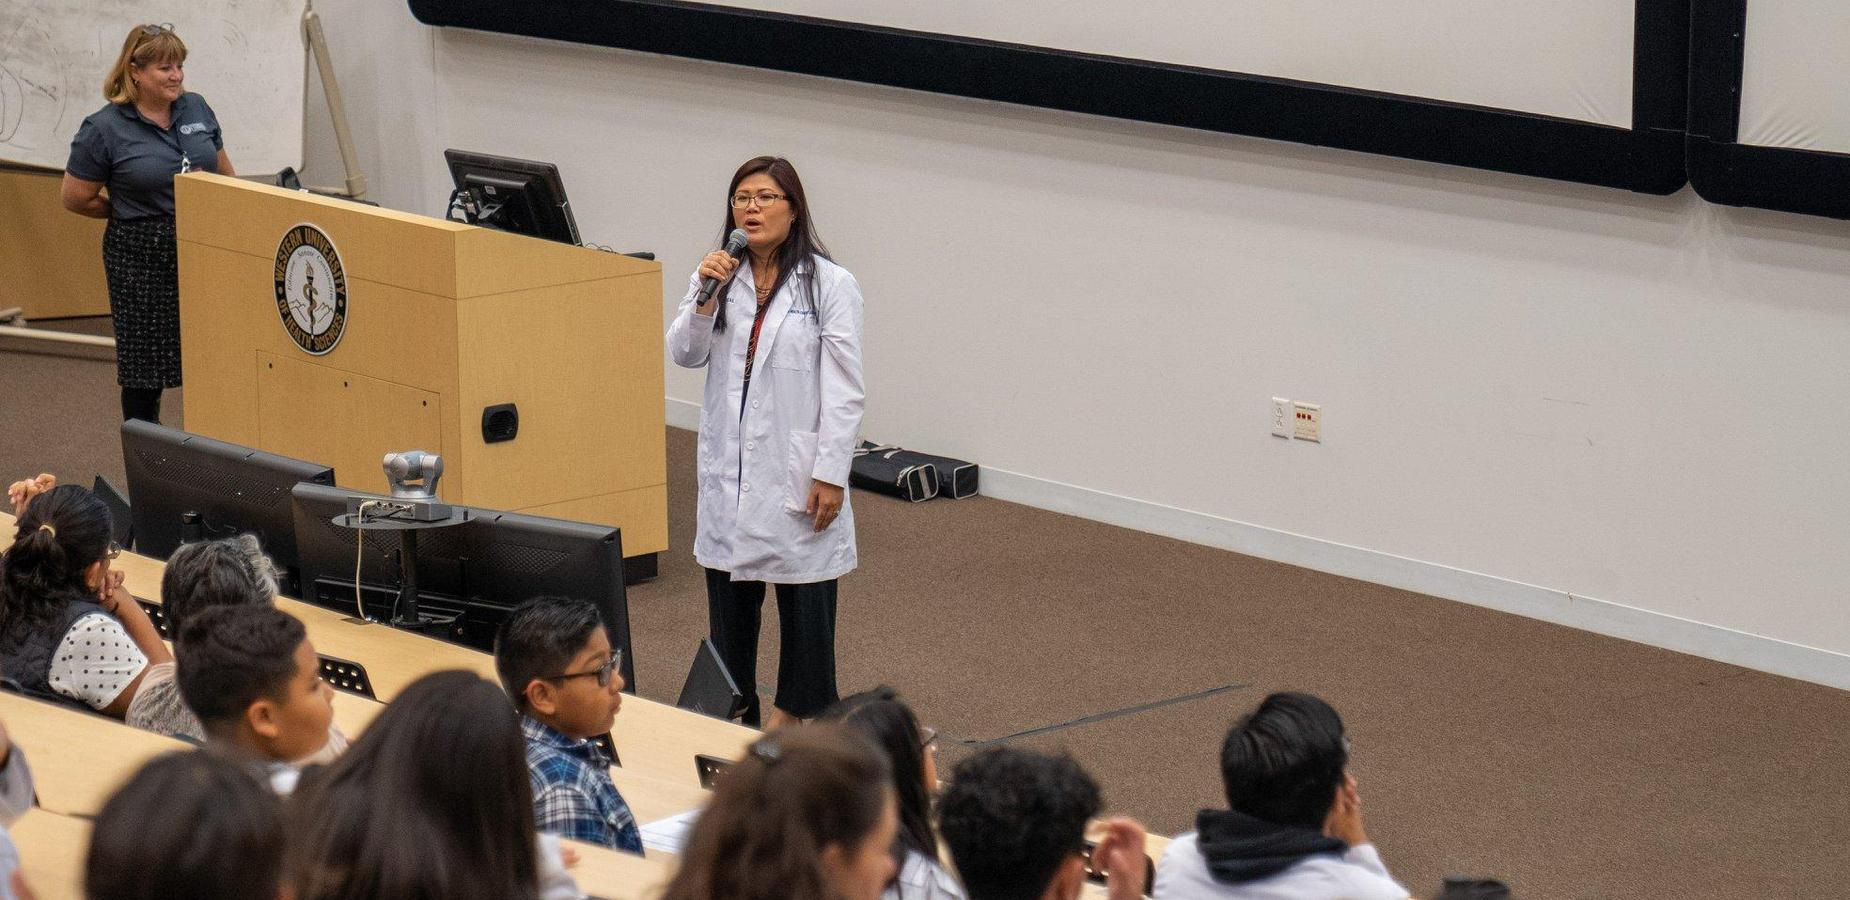 Dr Ramos-beal Speaking to students